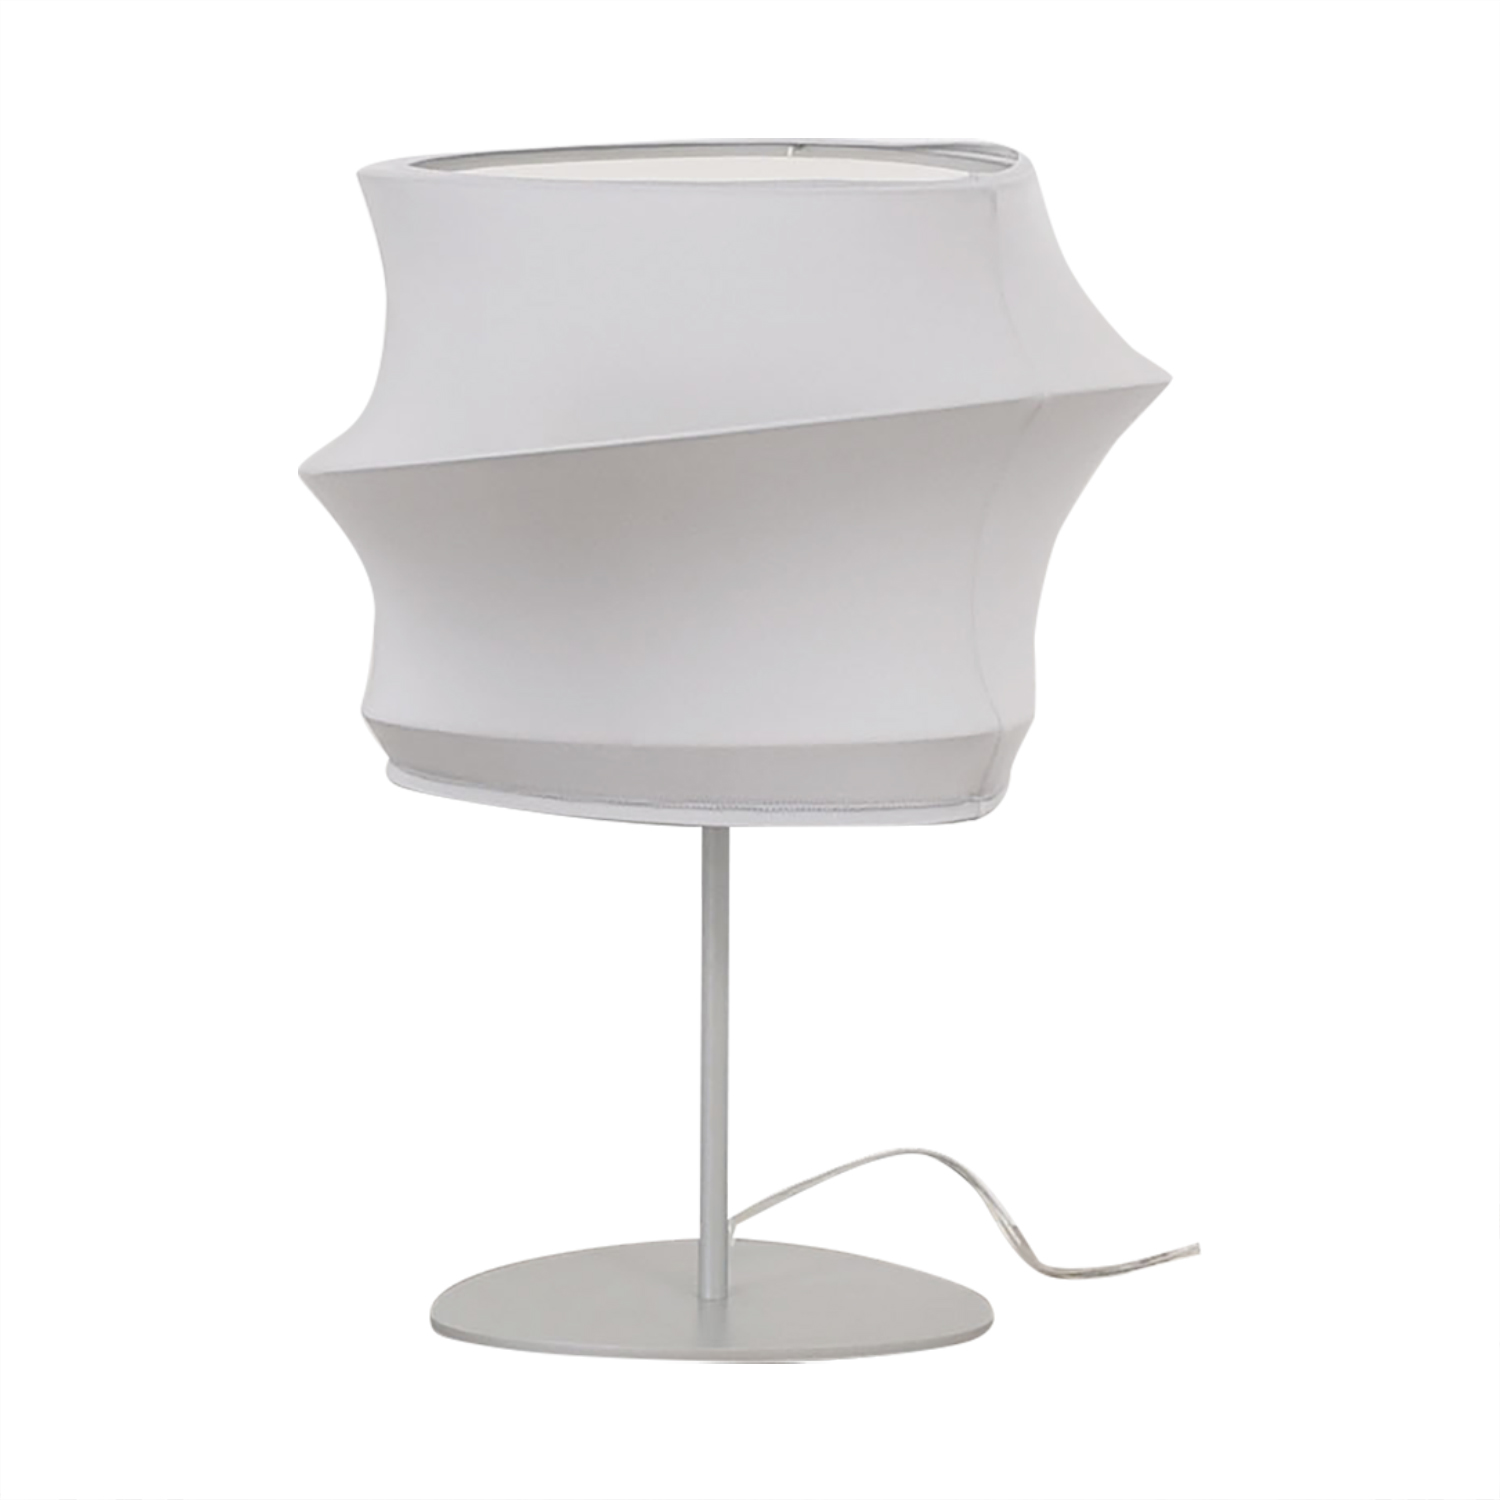 Calligaris Cygnus Table Lamp Calligaris